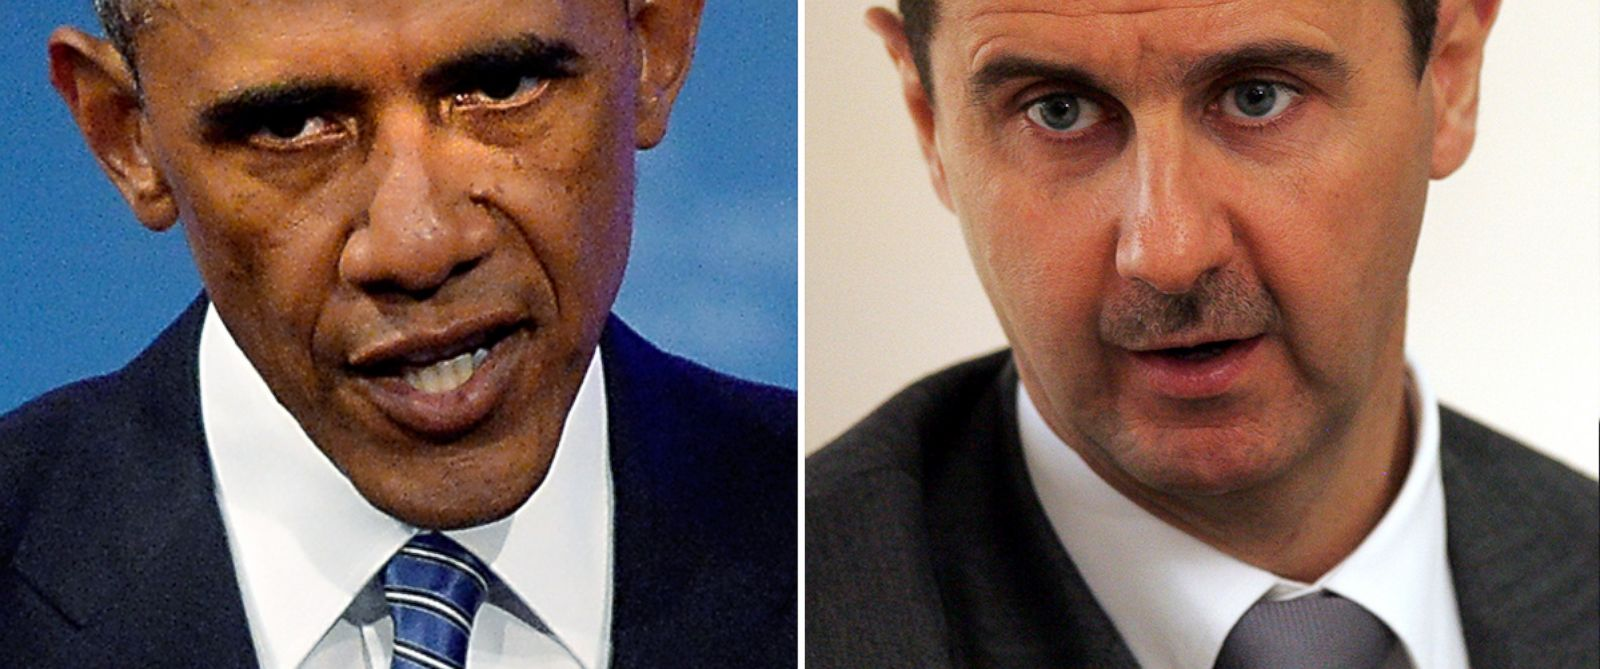 PHOTO: Barack Obama speaks in North Carolina on Aug. 26, 2014 and Syrian President Bashar Assad is pictured in Damascus, Syria on May 10, 2010.